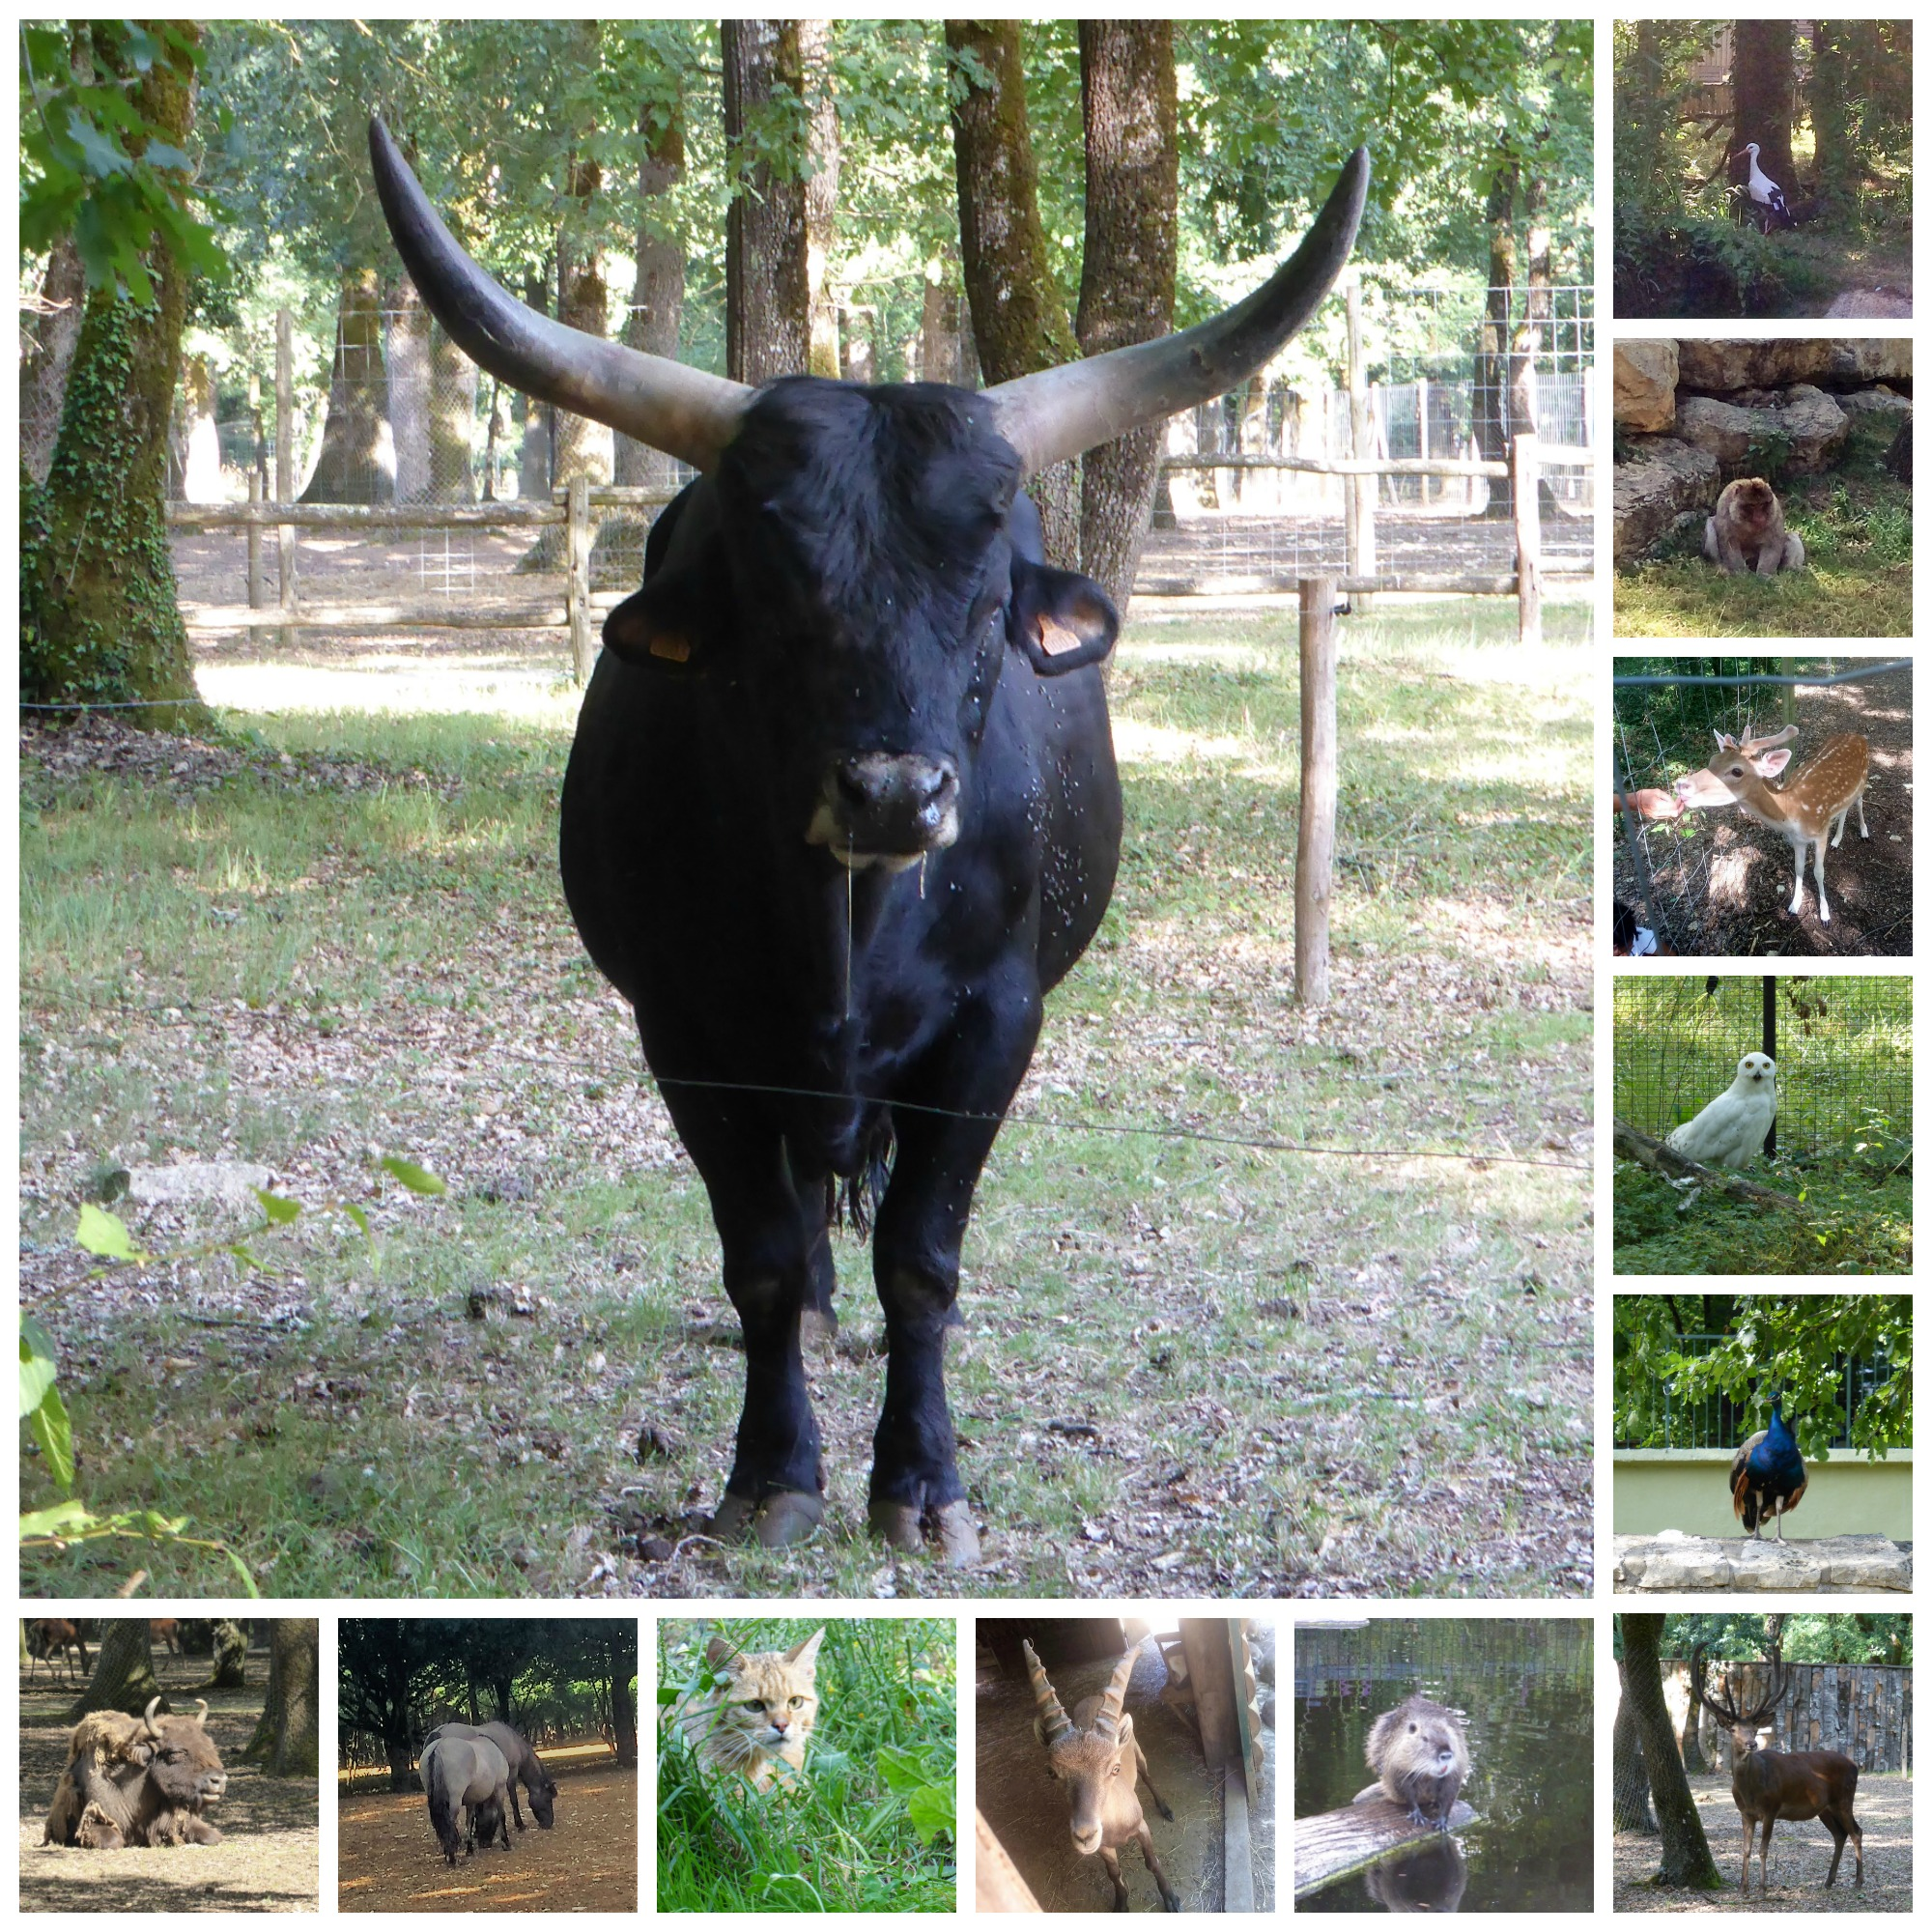 Zoodyssée collage